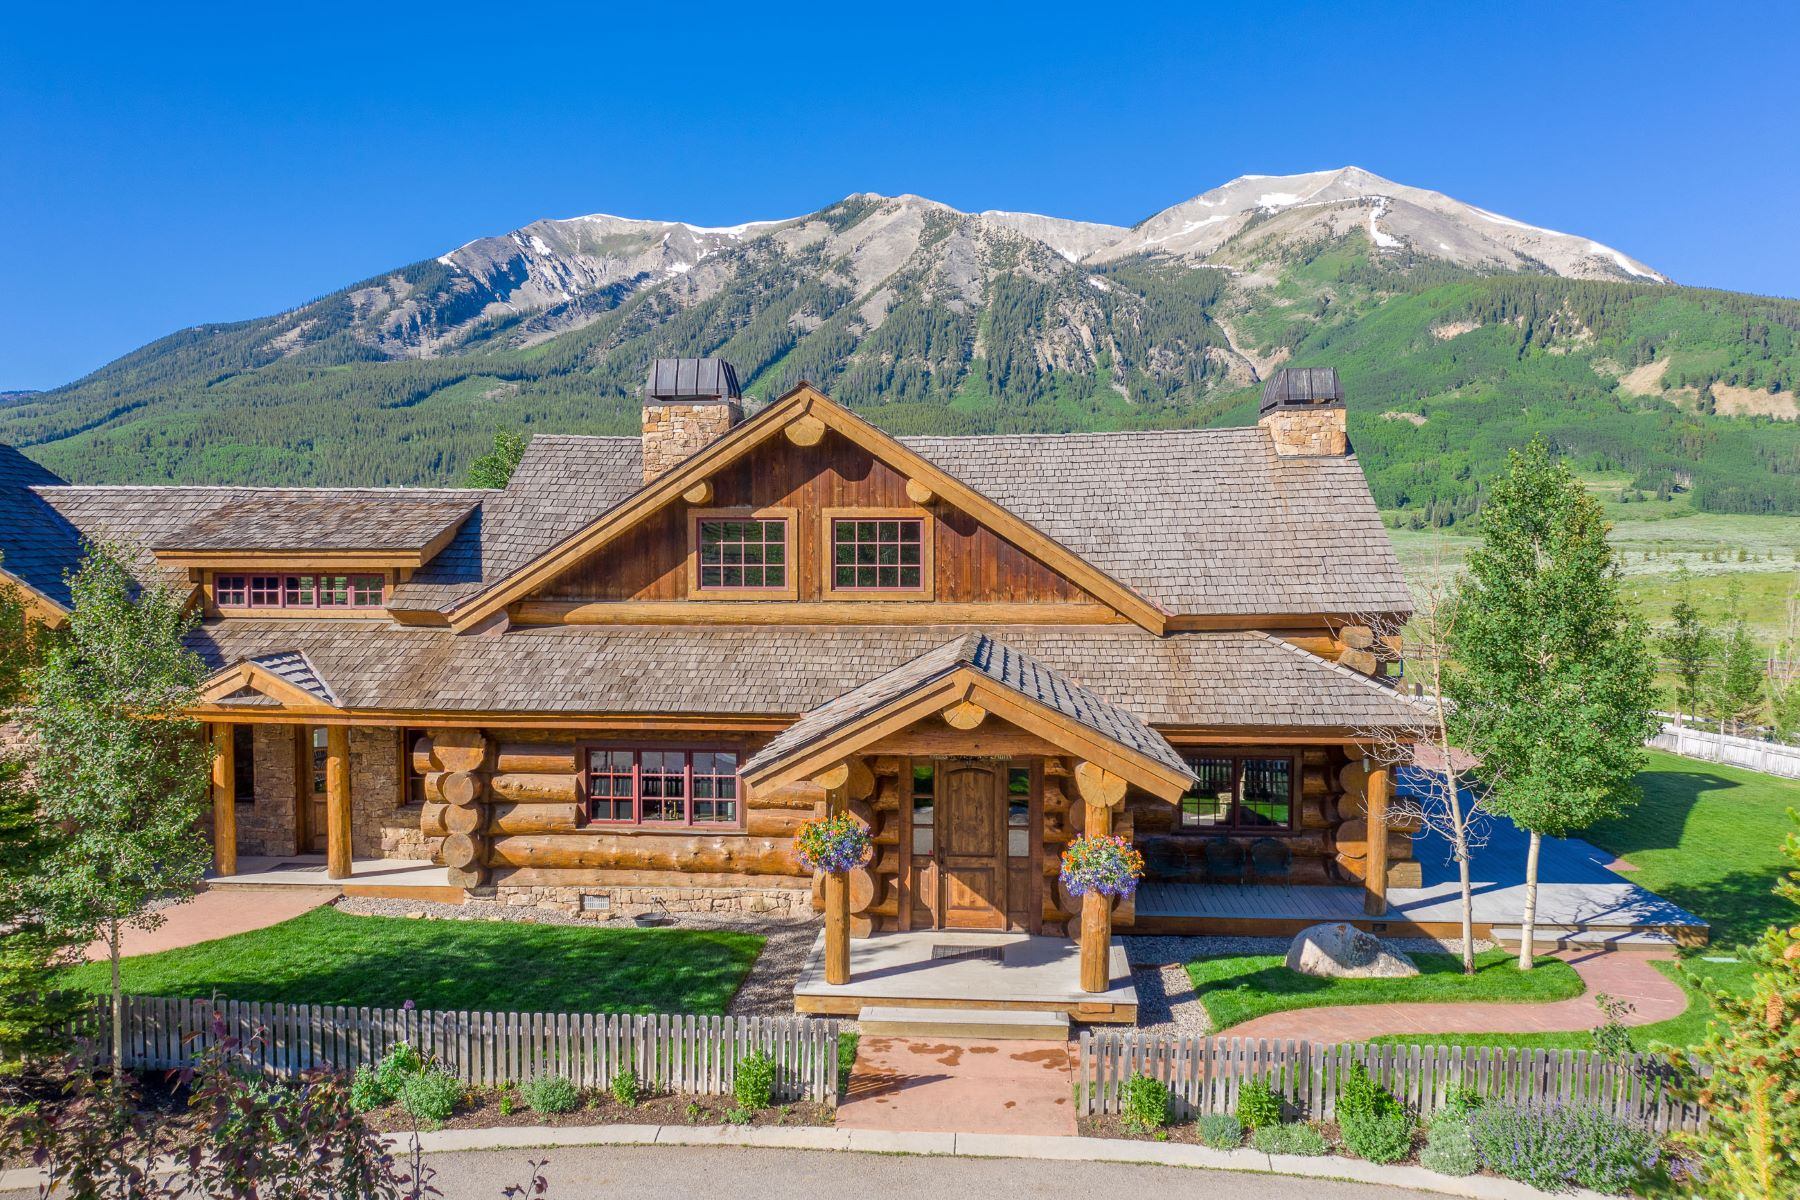 Single Family Homes for Sale at Red Feather Ranch 340 Wright Ranch Road, Crested Butte, Colorado 81224 United States